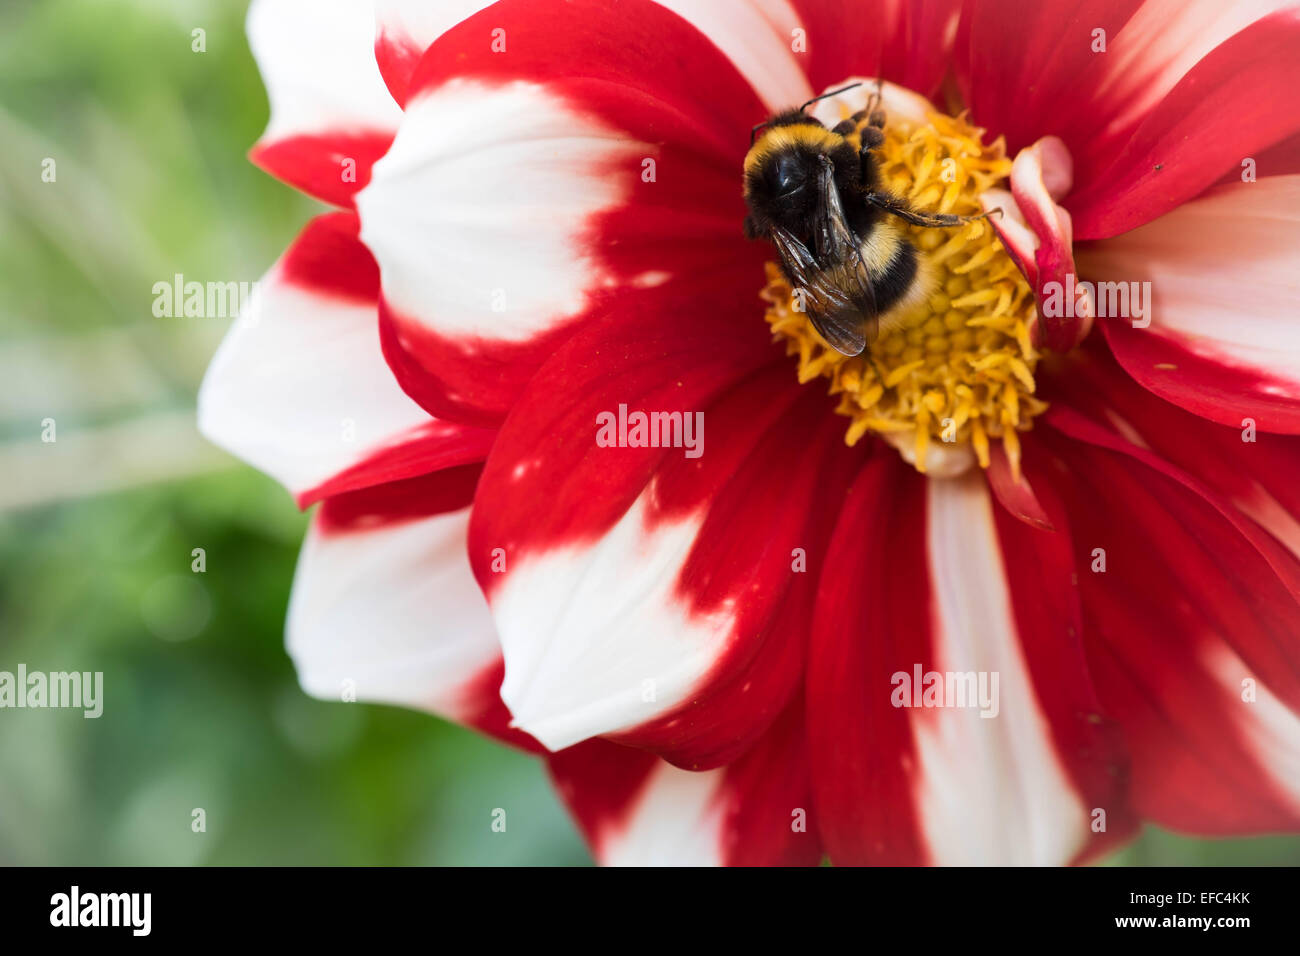 A bee sitting in the middle of an ice and fire dahlia flower - Stock Image